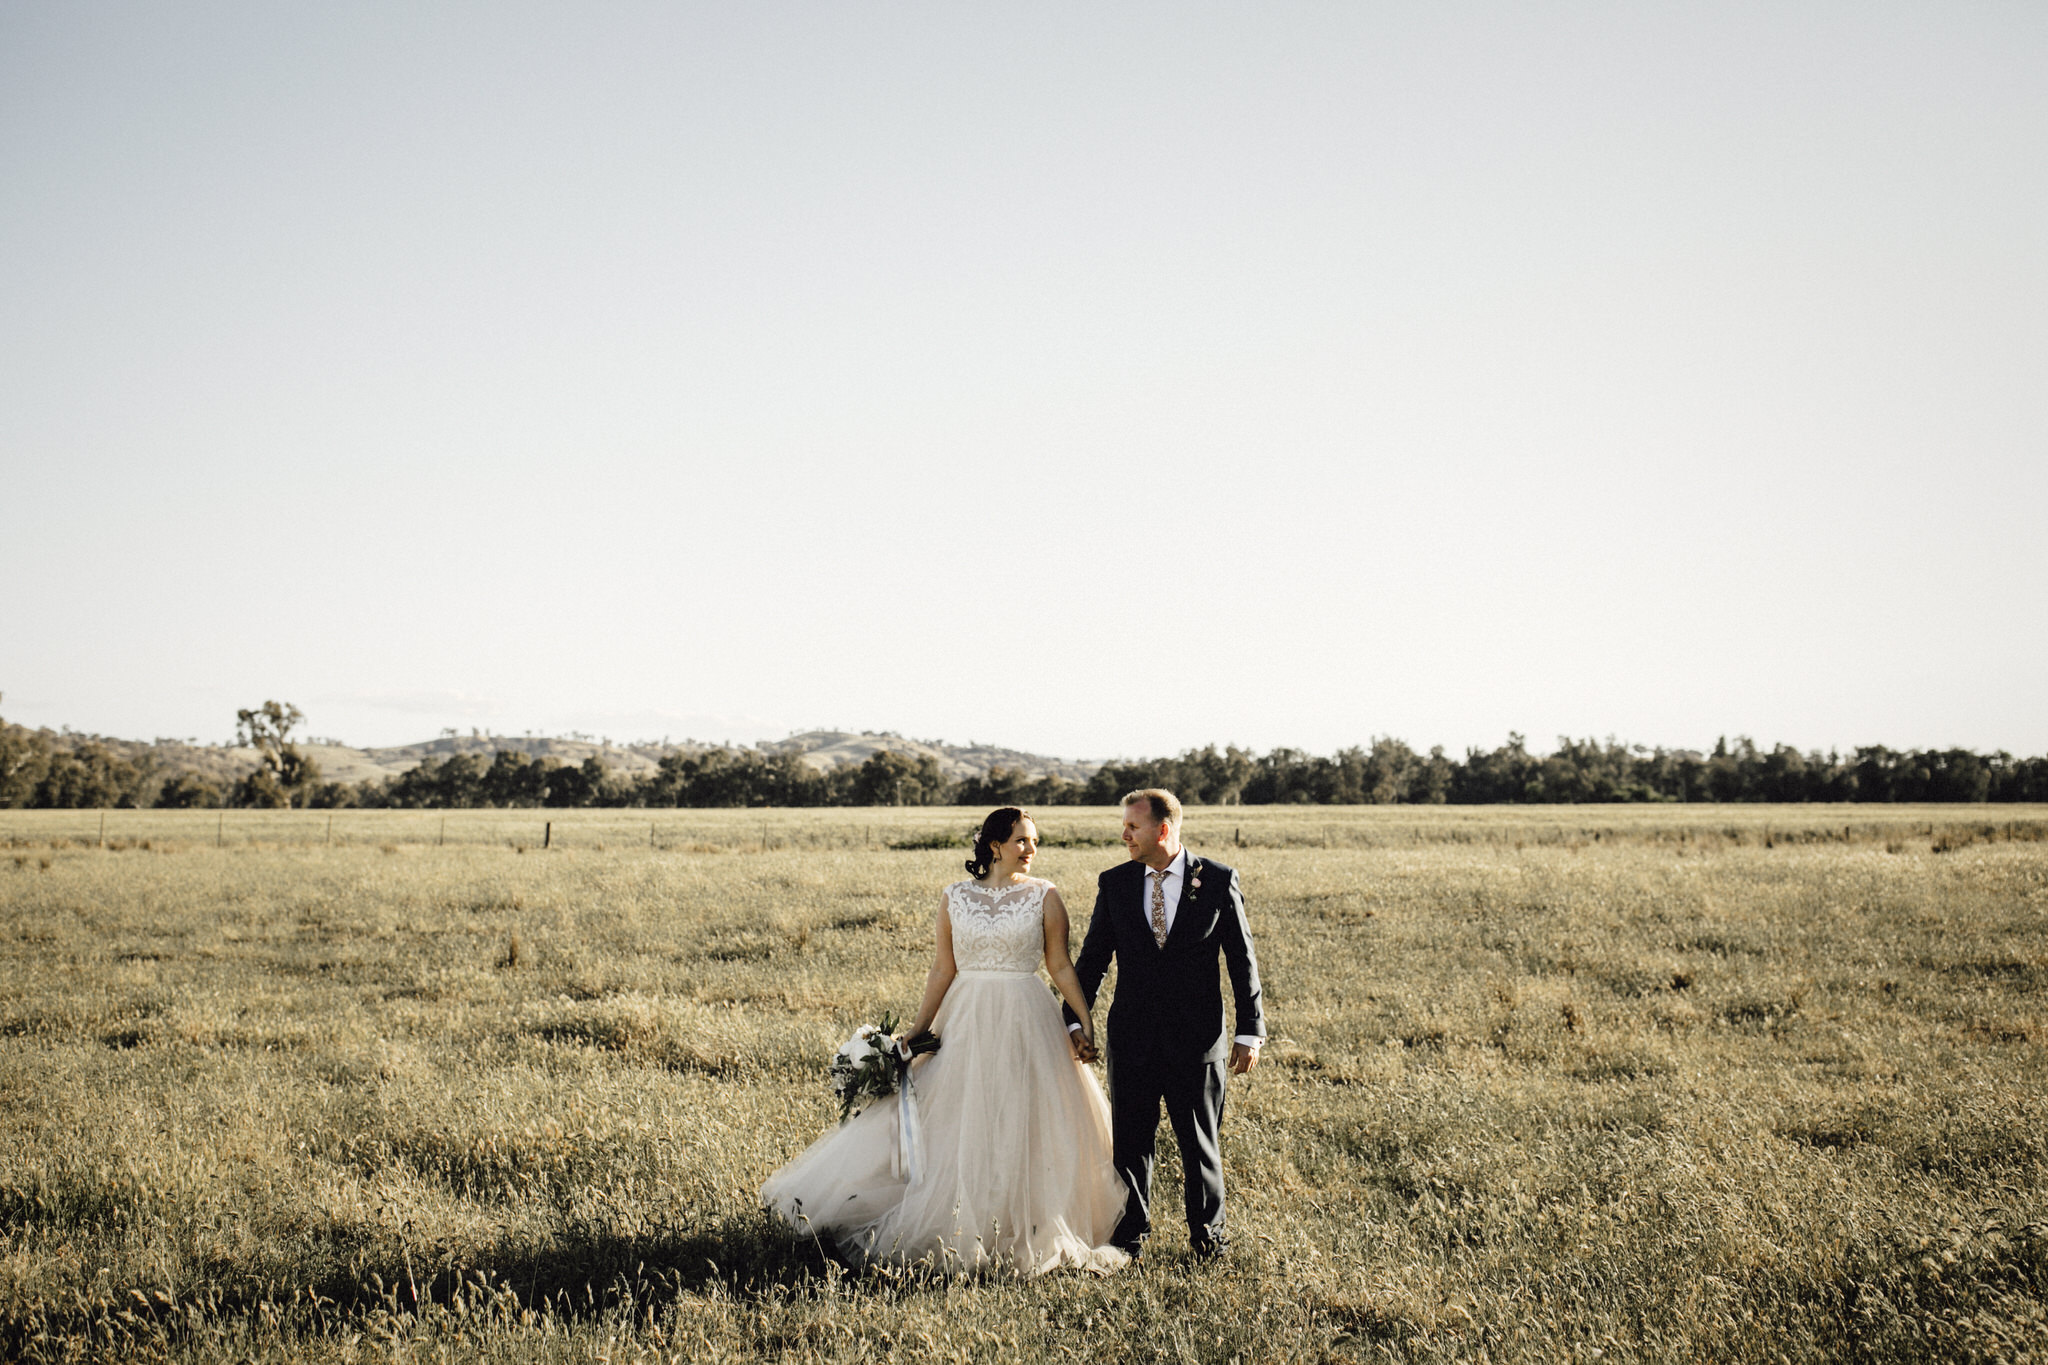 Southern highlands wedding photographer, kiama wedding photographer, sunshine coast wedding, maleny wedding, natural, candid, destination wedding photographer, canberra wedding photographer, country